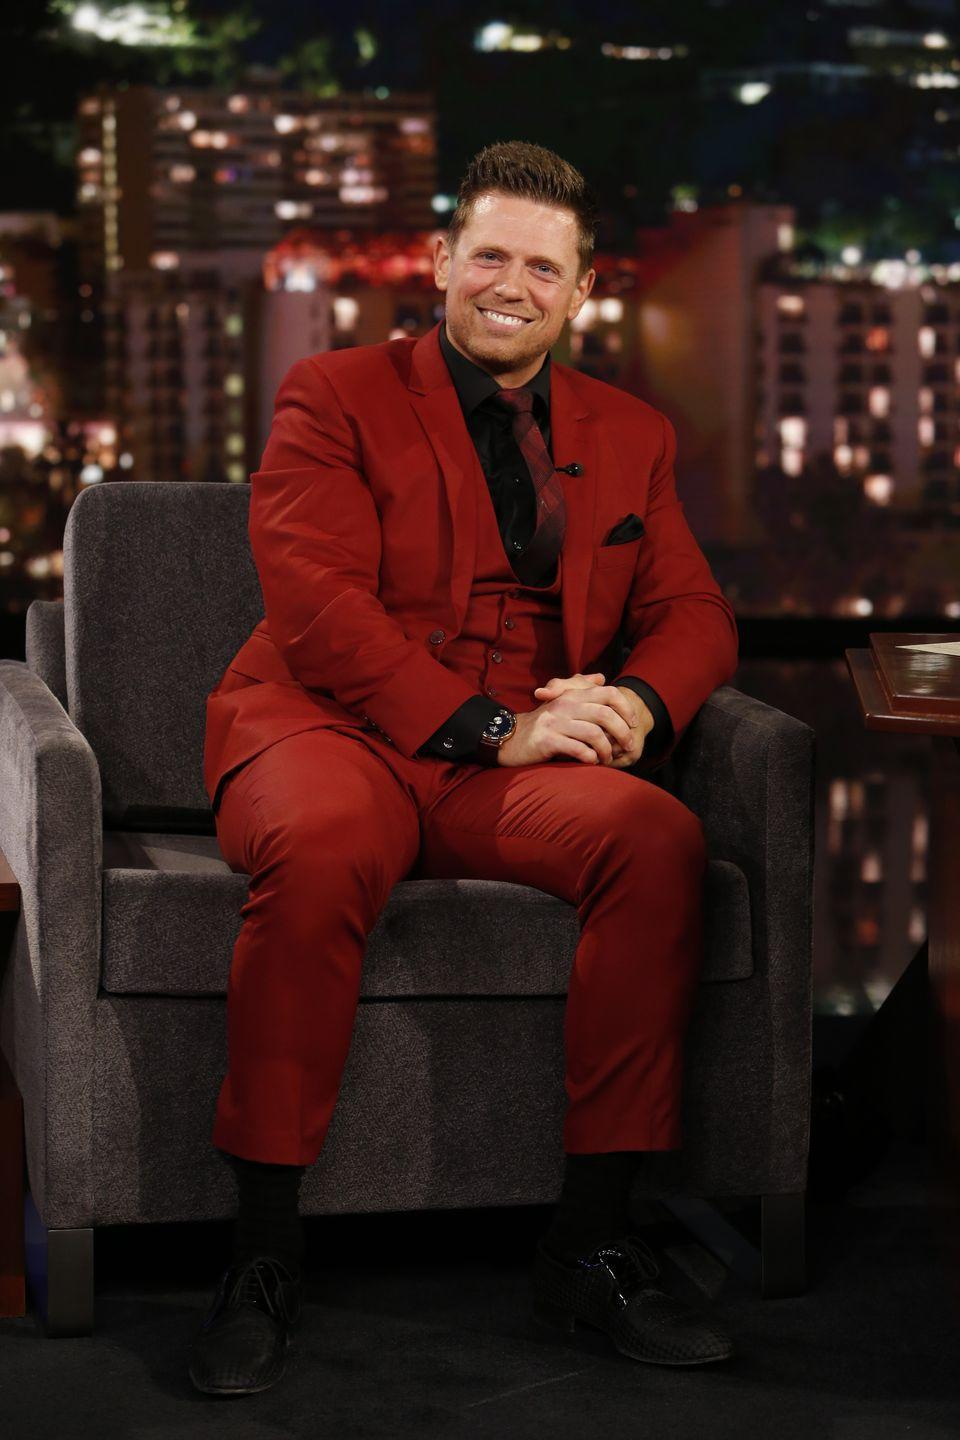 """<p>After gaining fame on <em>The Real World</em>, Mizanin took his new nickname and turned it into a professional wrestling career. He is currently signed to the WWE, where he performs for the SmackDown series. He's married to another professional wrestler, Maryse Ouellet, who has <a href=""""https://www.dailymotion.com/video/x75fpii"""" rel=""""nofollow noopener"""" target=""""_blank"""" data-ylk=""""slk:never seen his MTV episodes"""" class=""""link rapid-noclick-resp"""">never seen his MTV episodes</a>.</p>"""